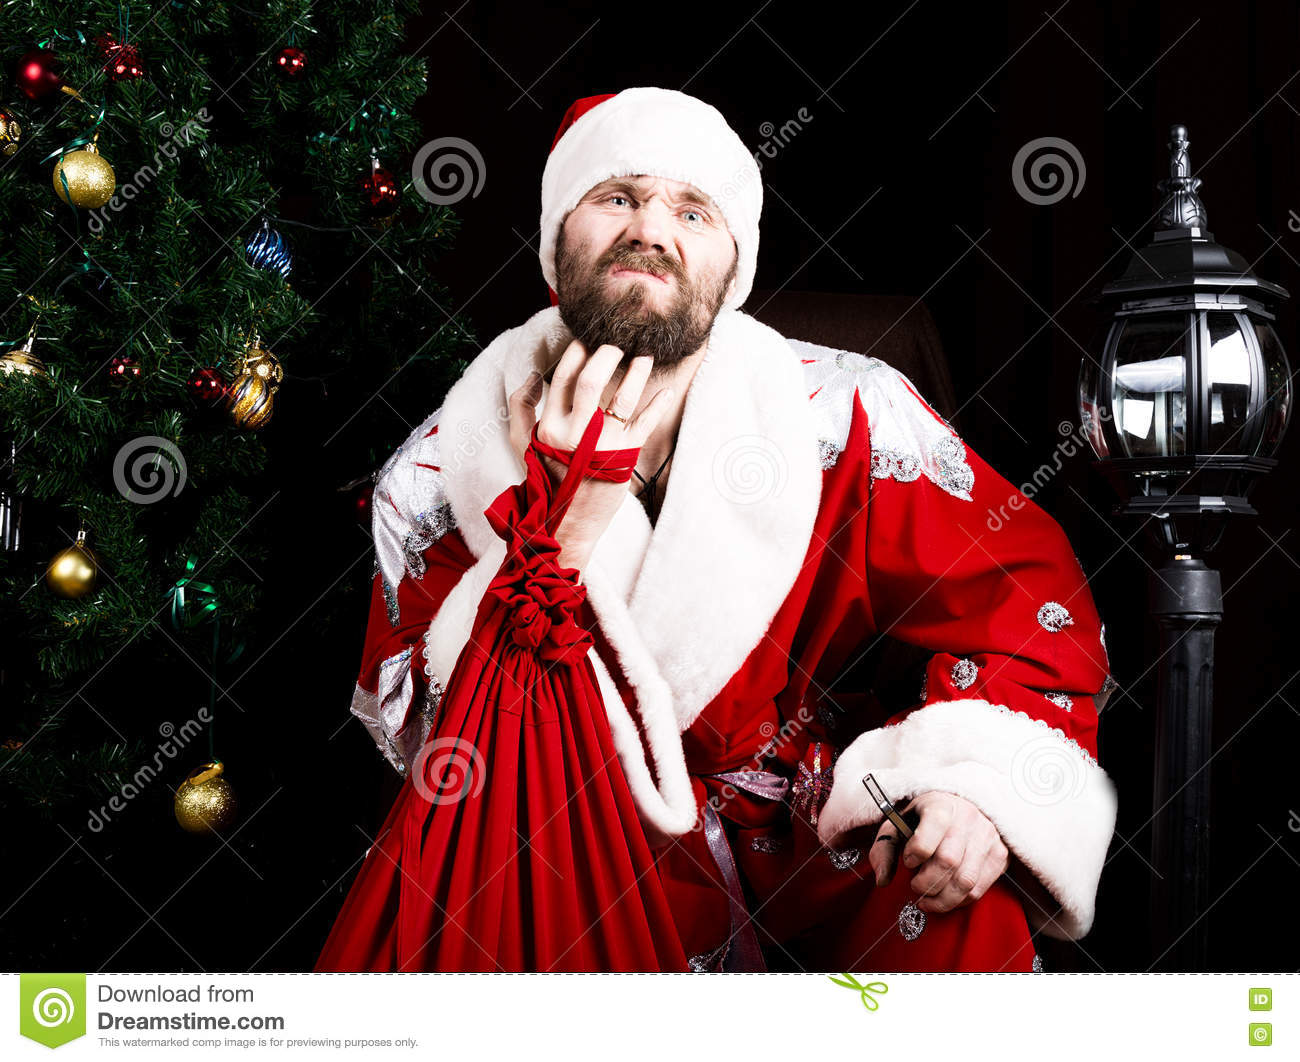 Bad brutal Santa Claus holding the bag with gifts and scratching his beard on the background of Christmas tree